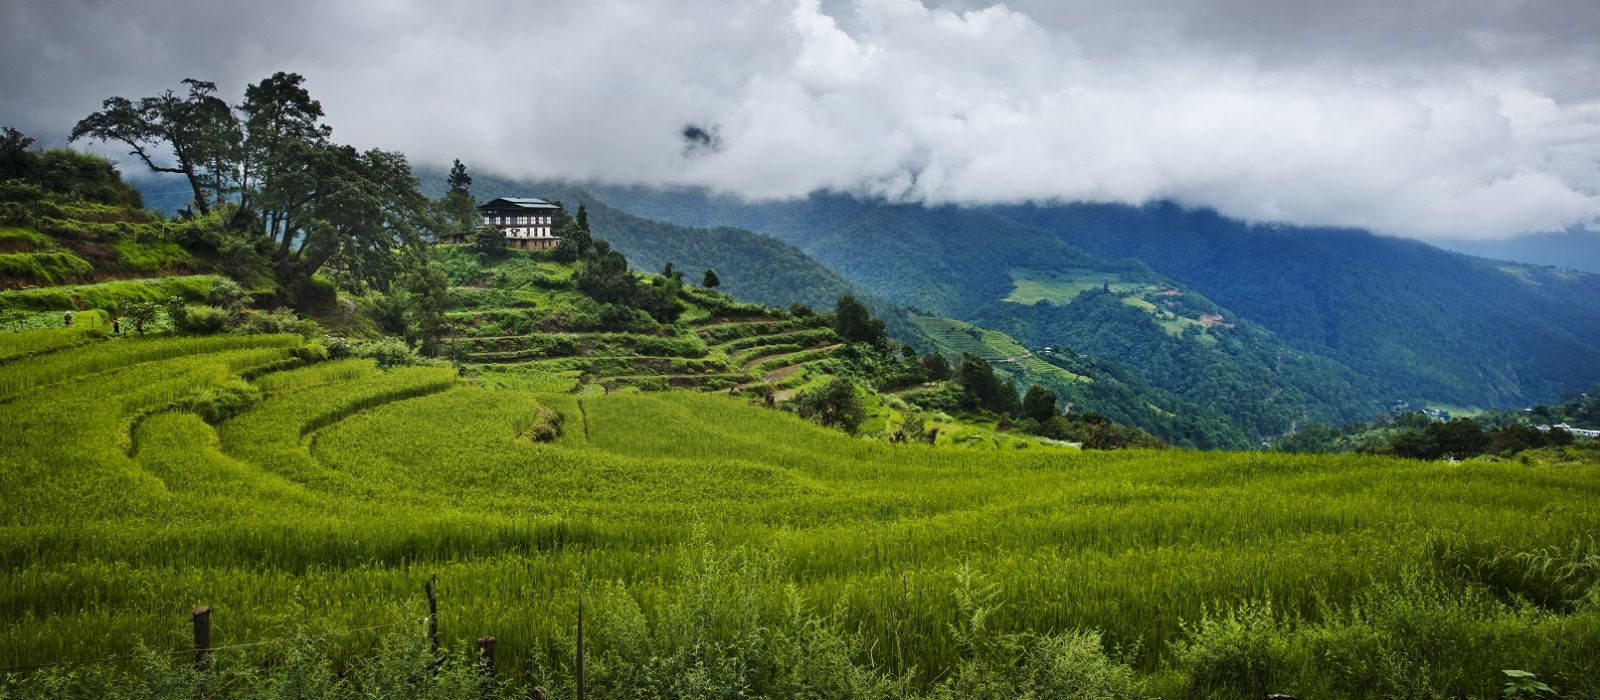 Luxury Bhutan and Thailand Paradise Islands Tour Trip 2